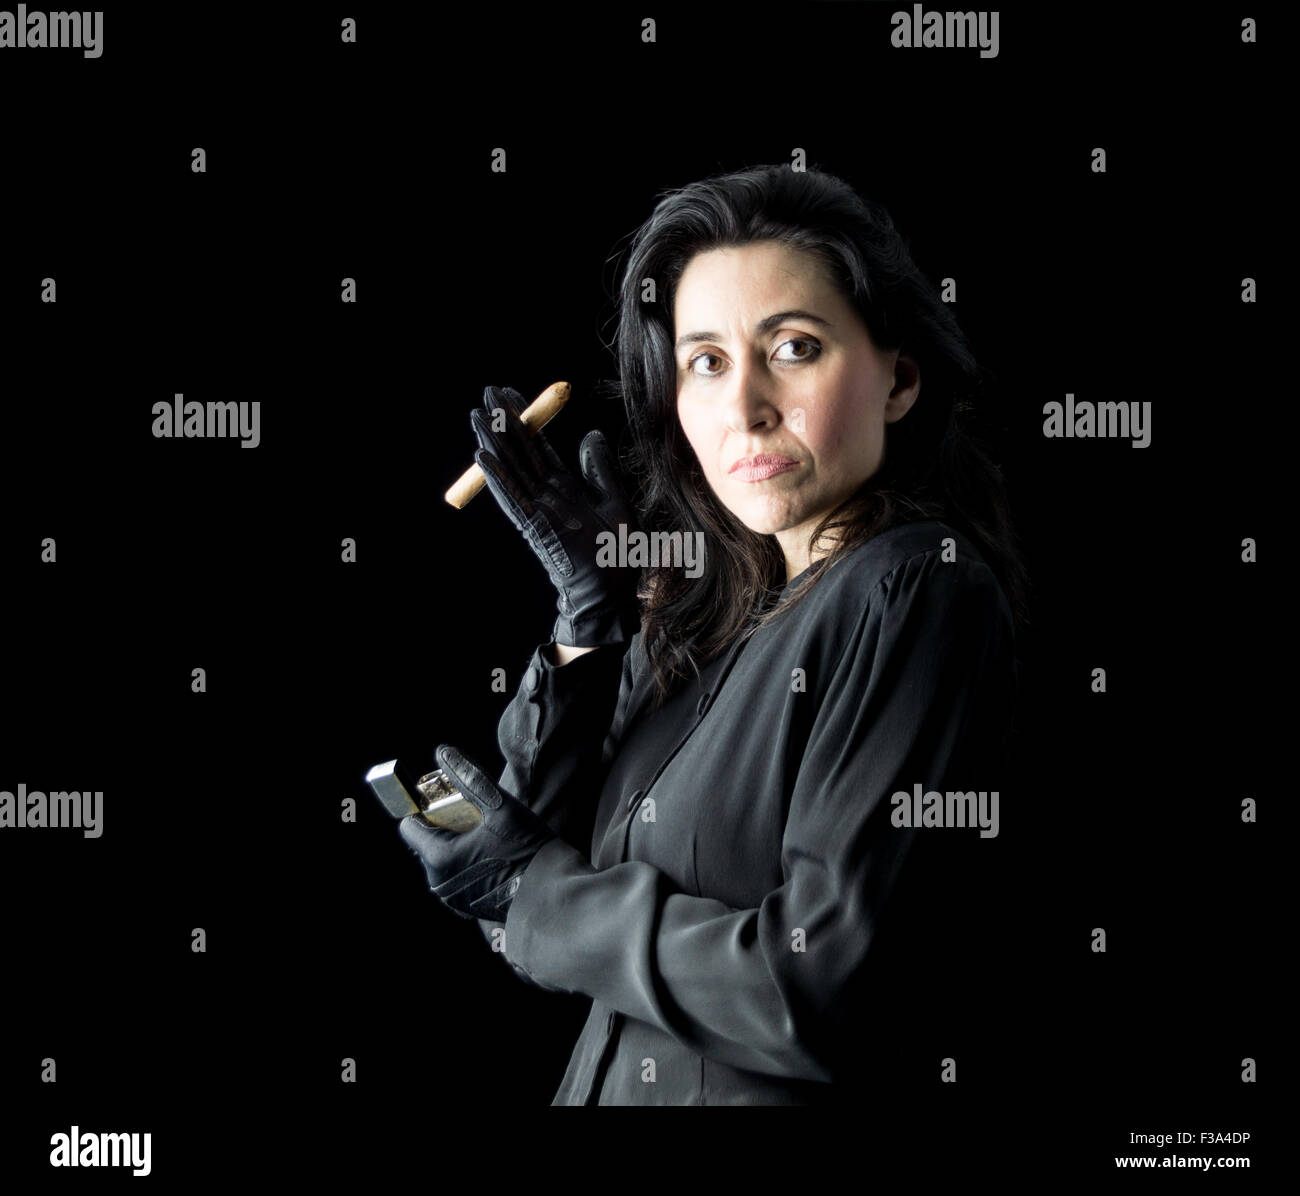 Brunette woman in black dress and black gloves holding a cigar in one hand and a lighter in the other - Stock Image